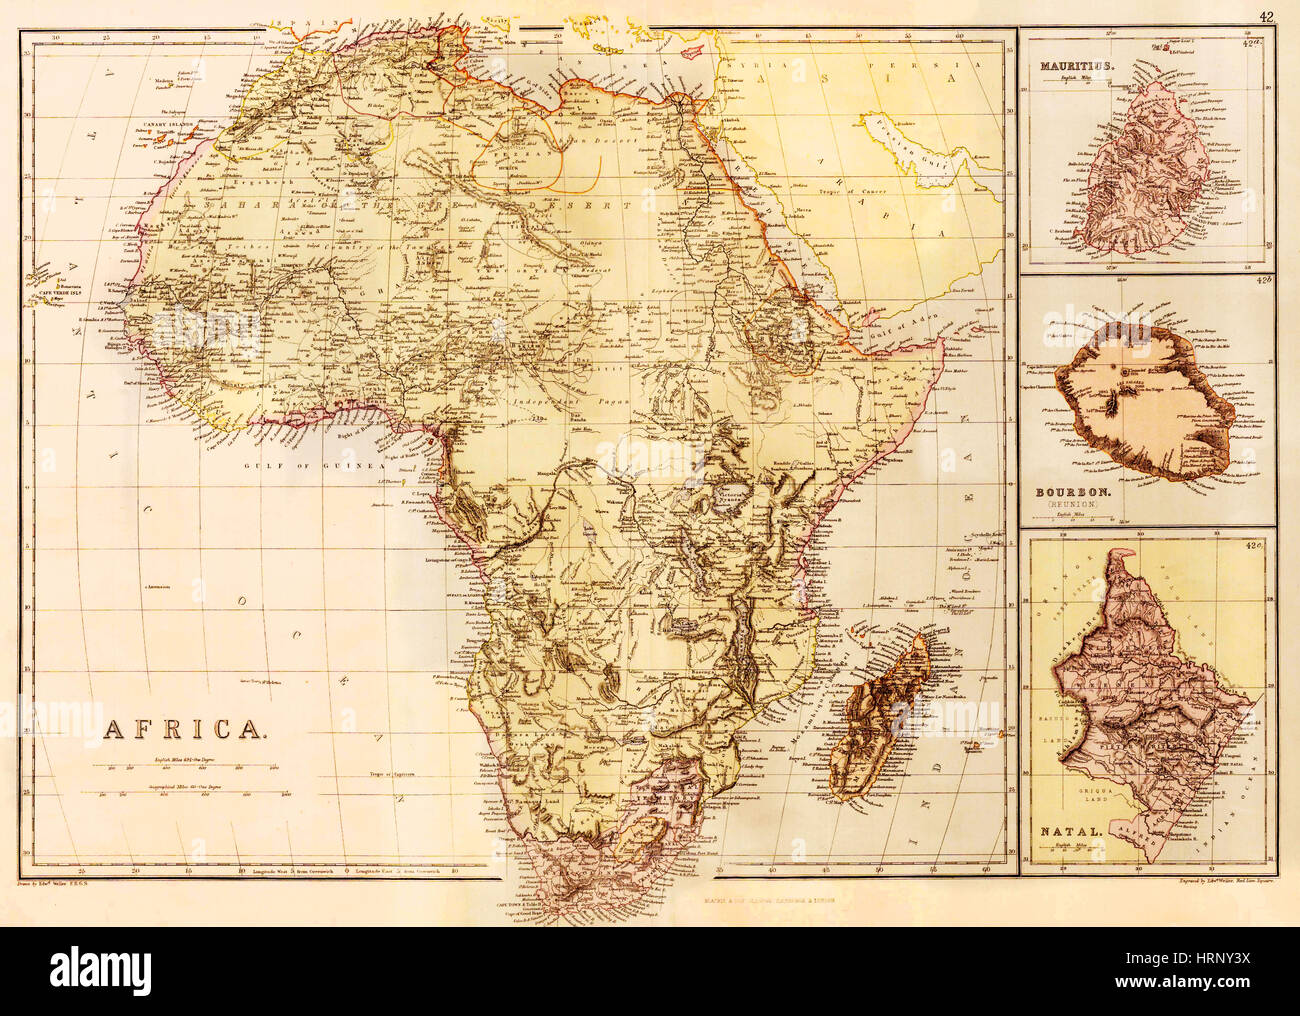 Map of Africa, c. 1850 - Stock Image